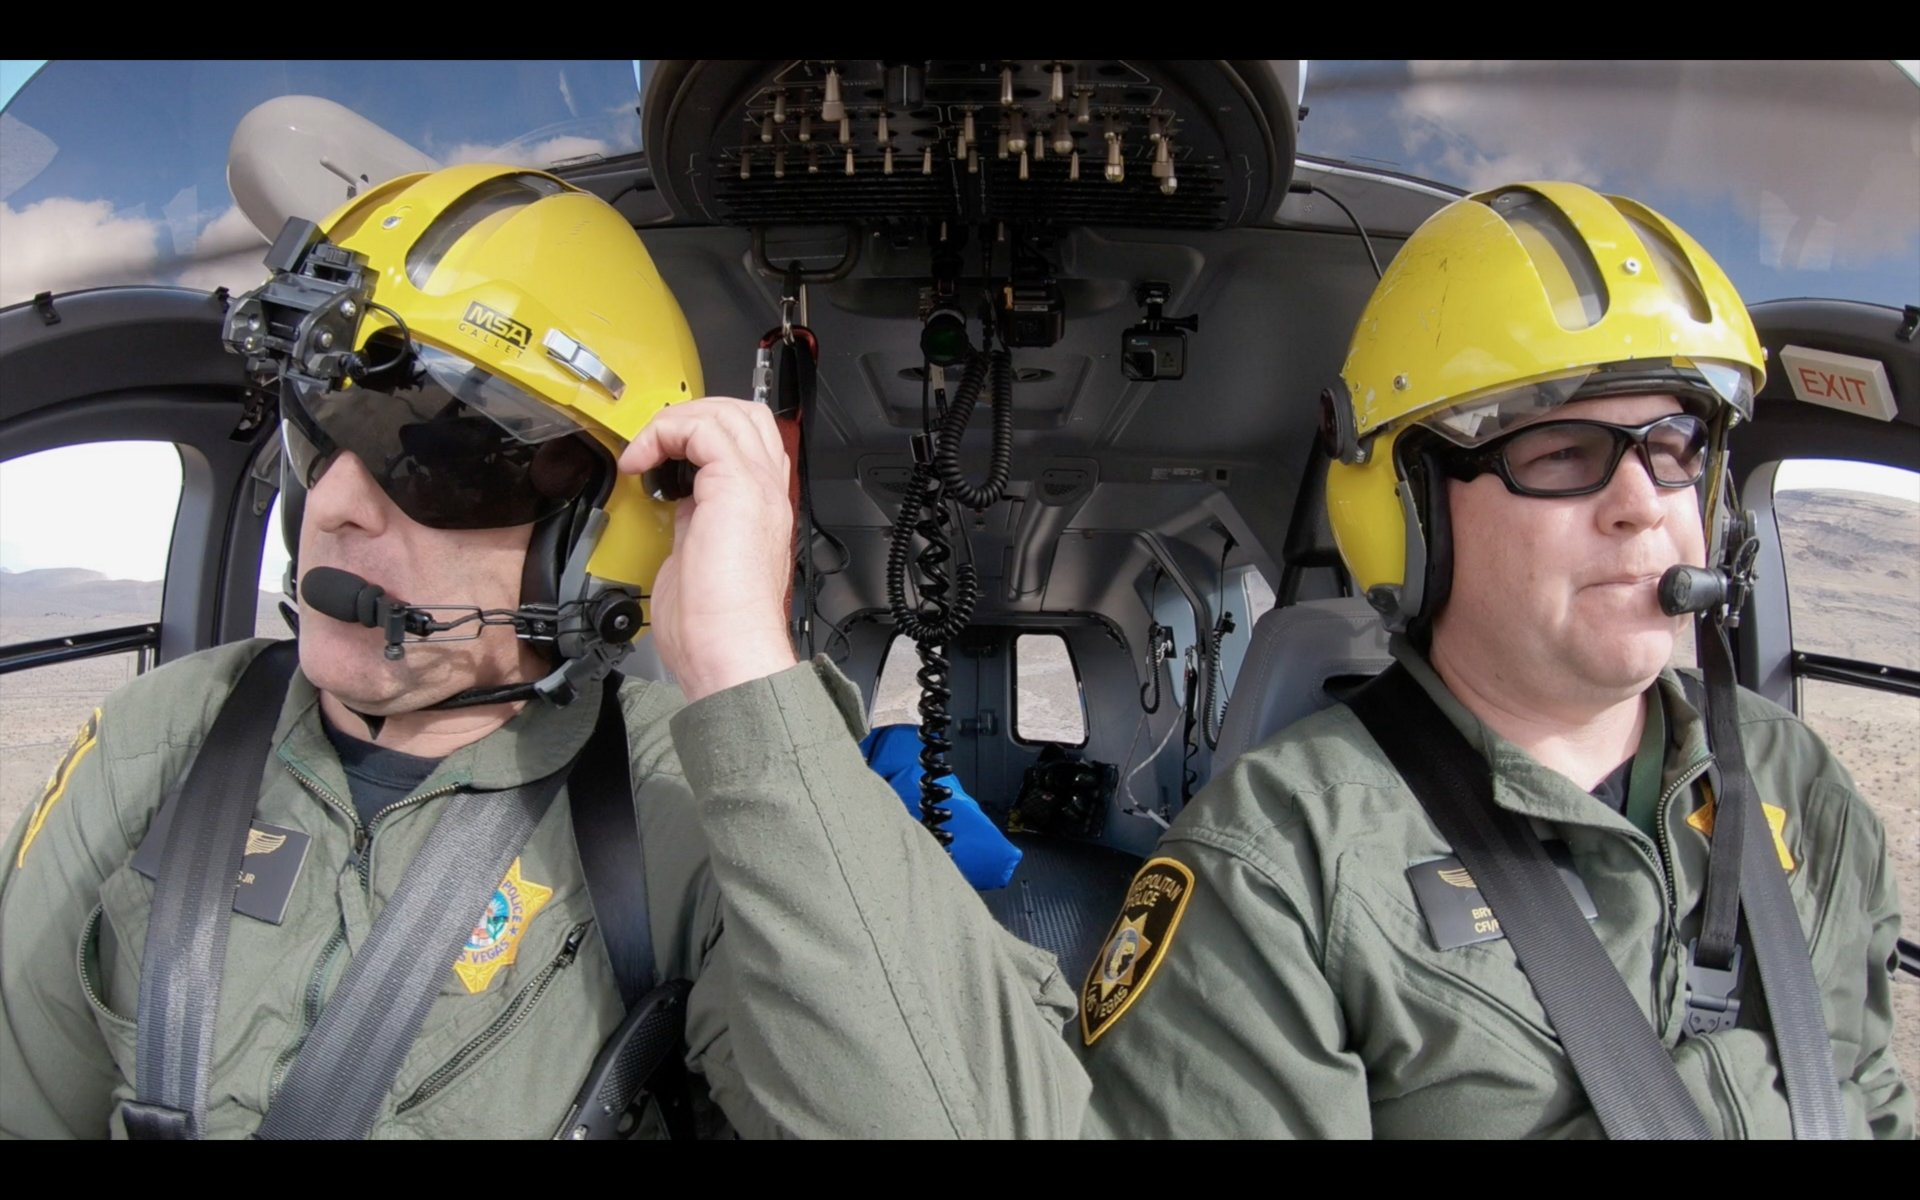 Aerial law enforcement: in service of their communities